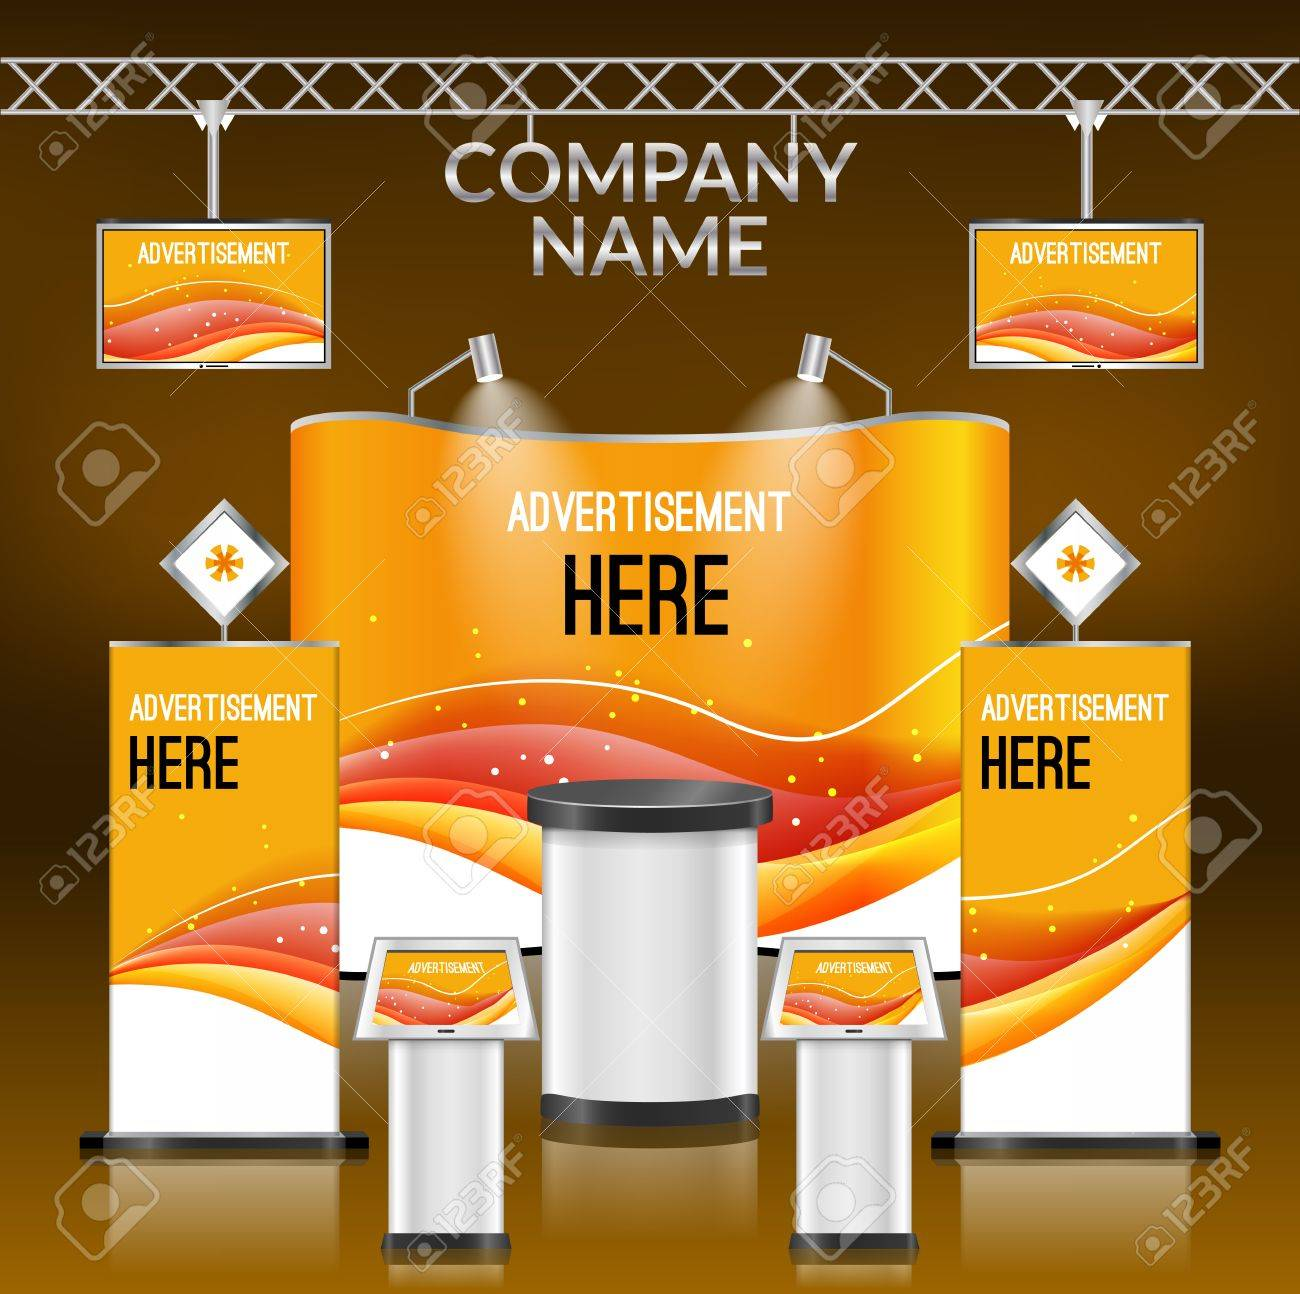 Exhibition Stand Layout Design : Exhibition advertising promotion stand orange design layout